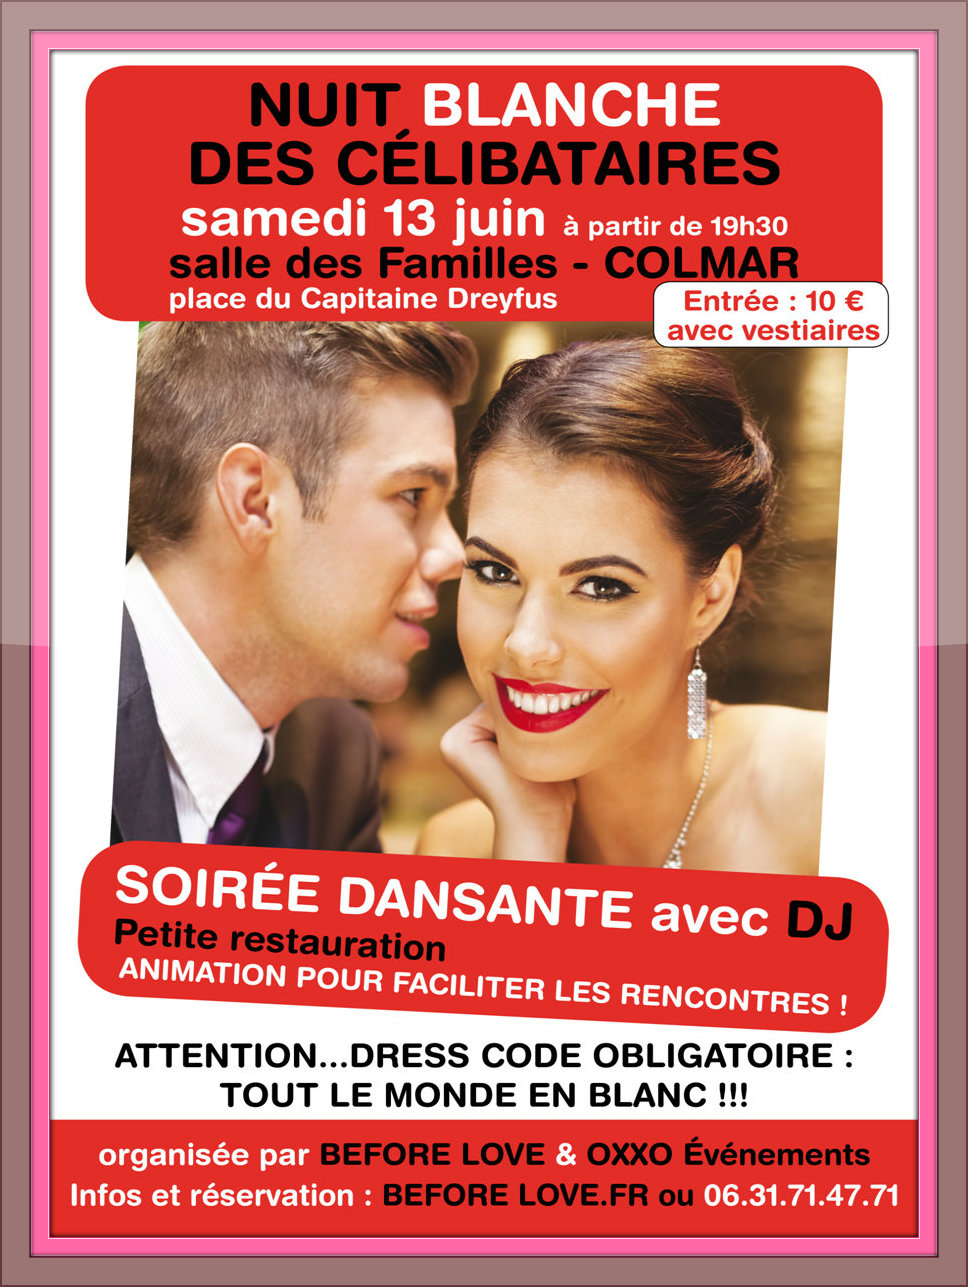 soir e dansante la nuit des c libataires 13 06 2015 beforelove speed dating c libataire. Black Bedroom Furniture Sets. Home Design Ideas